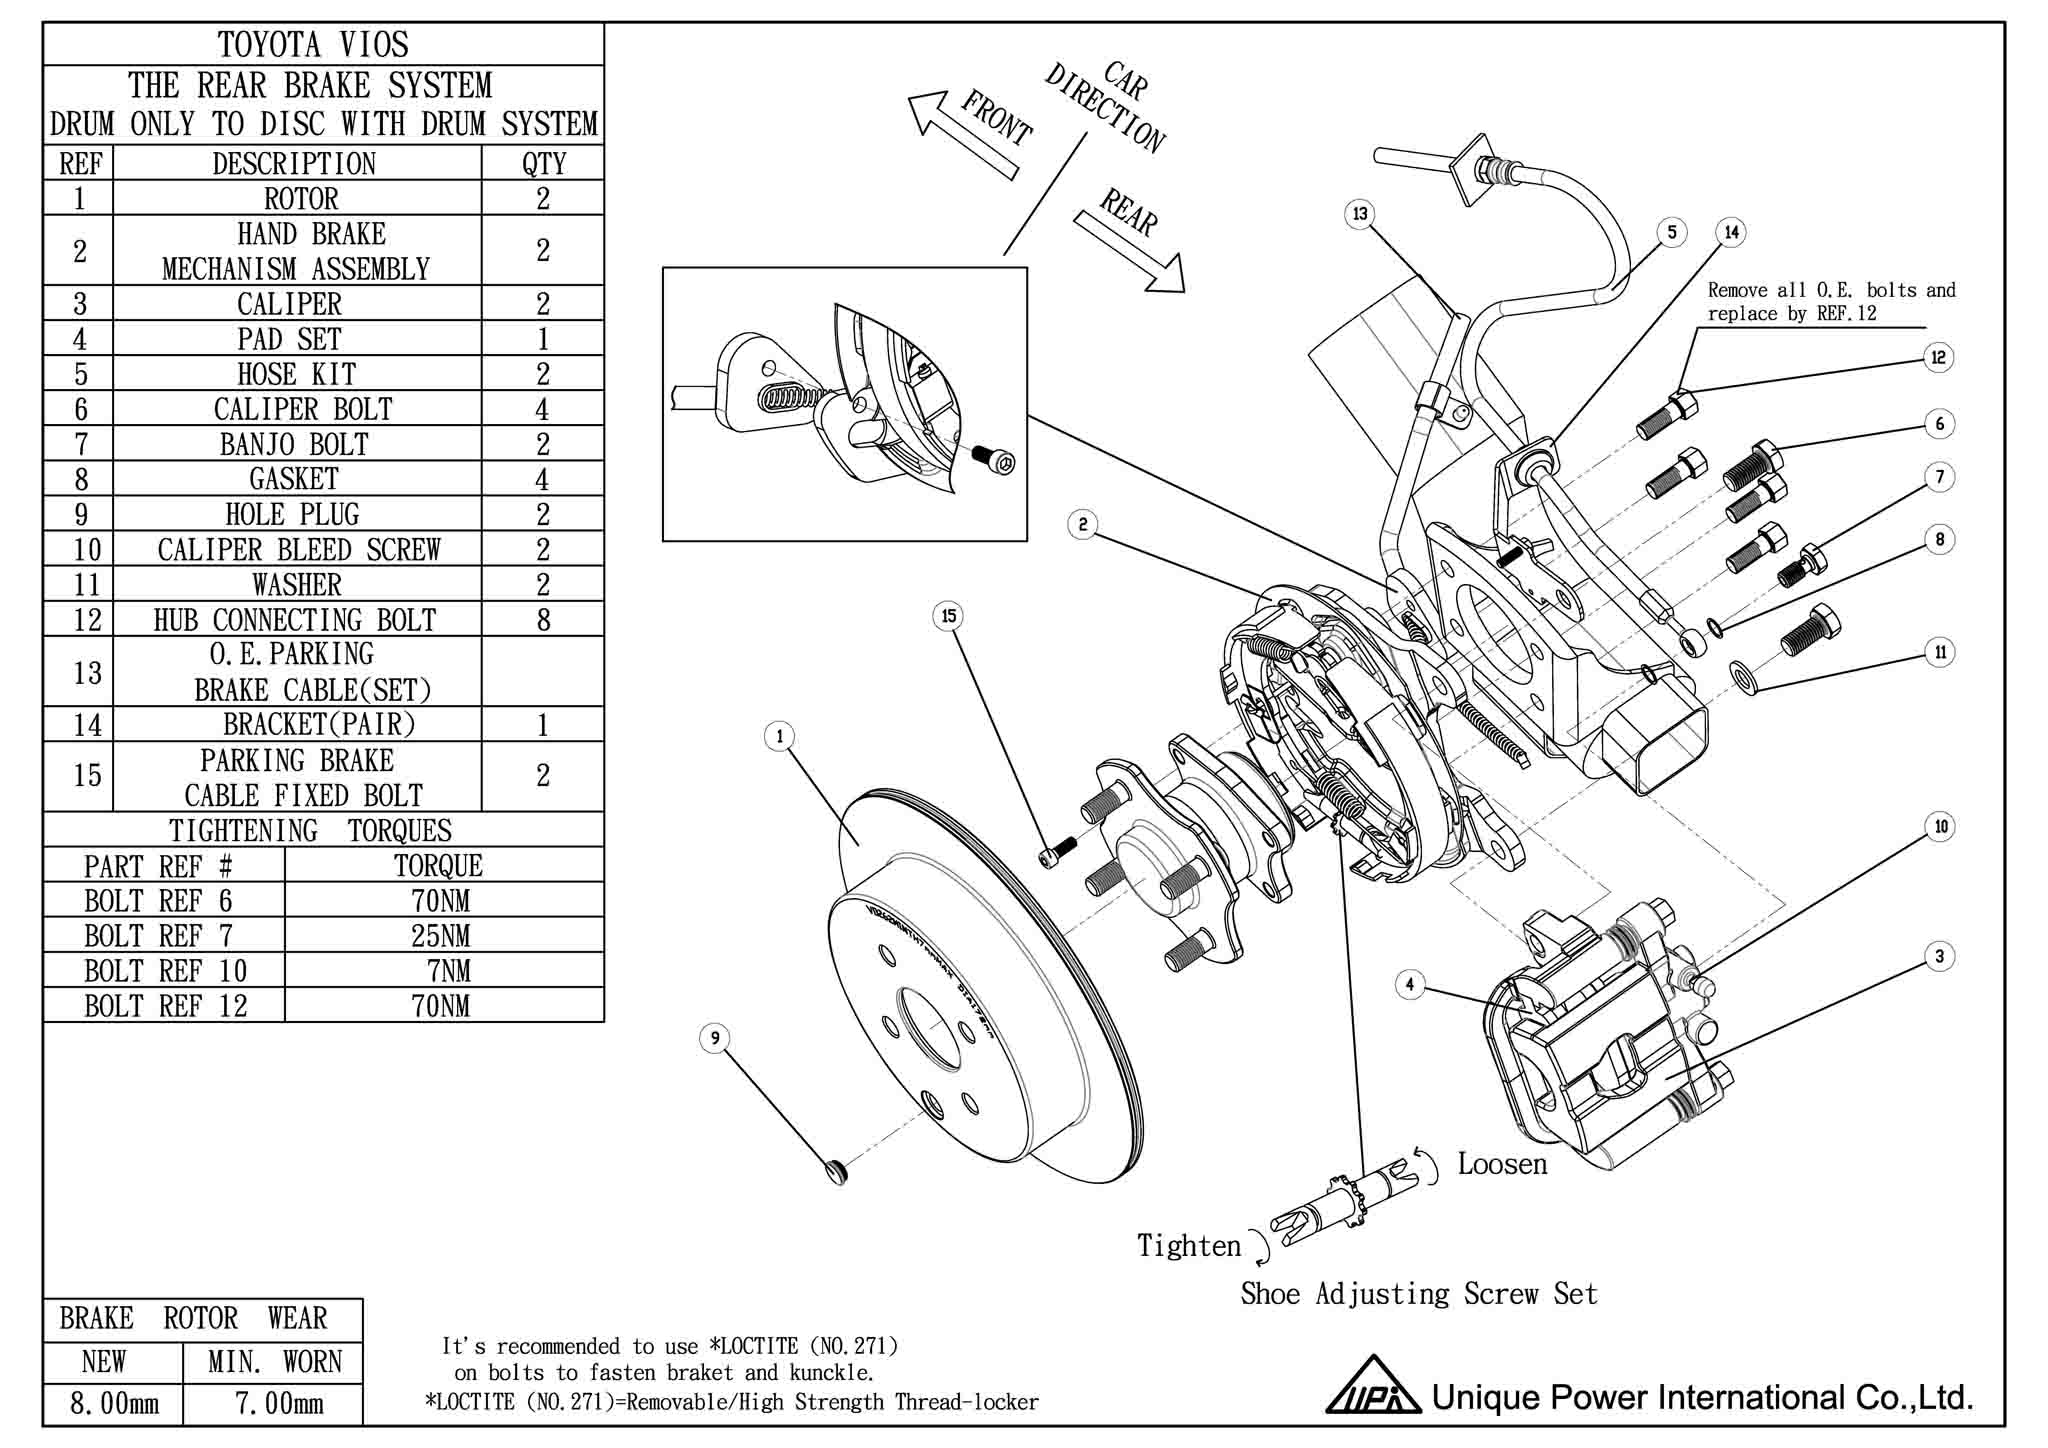 01 likewise 92 95 Wiper Motor Self Parking Switch Operational Questions 3260556 as well Thermal Oxidizer besides 1997 2004 Honda Trx250 Te Tm Recon And Fourtrax Service Repair Manual Instant Download also Draw And Label A Mechanical Part. on honda design diagram